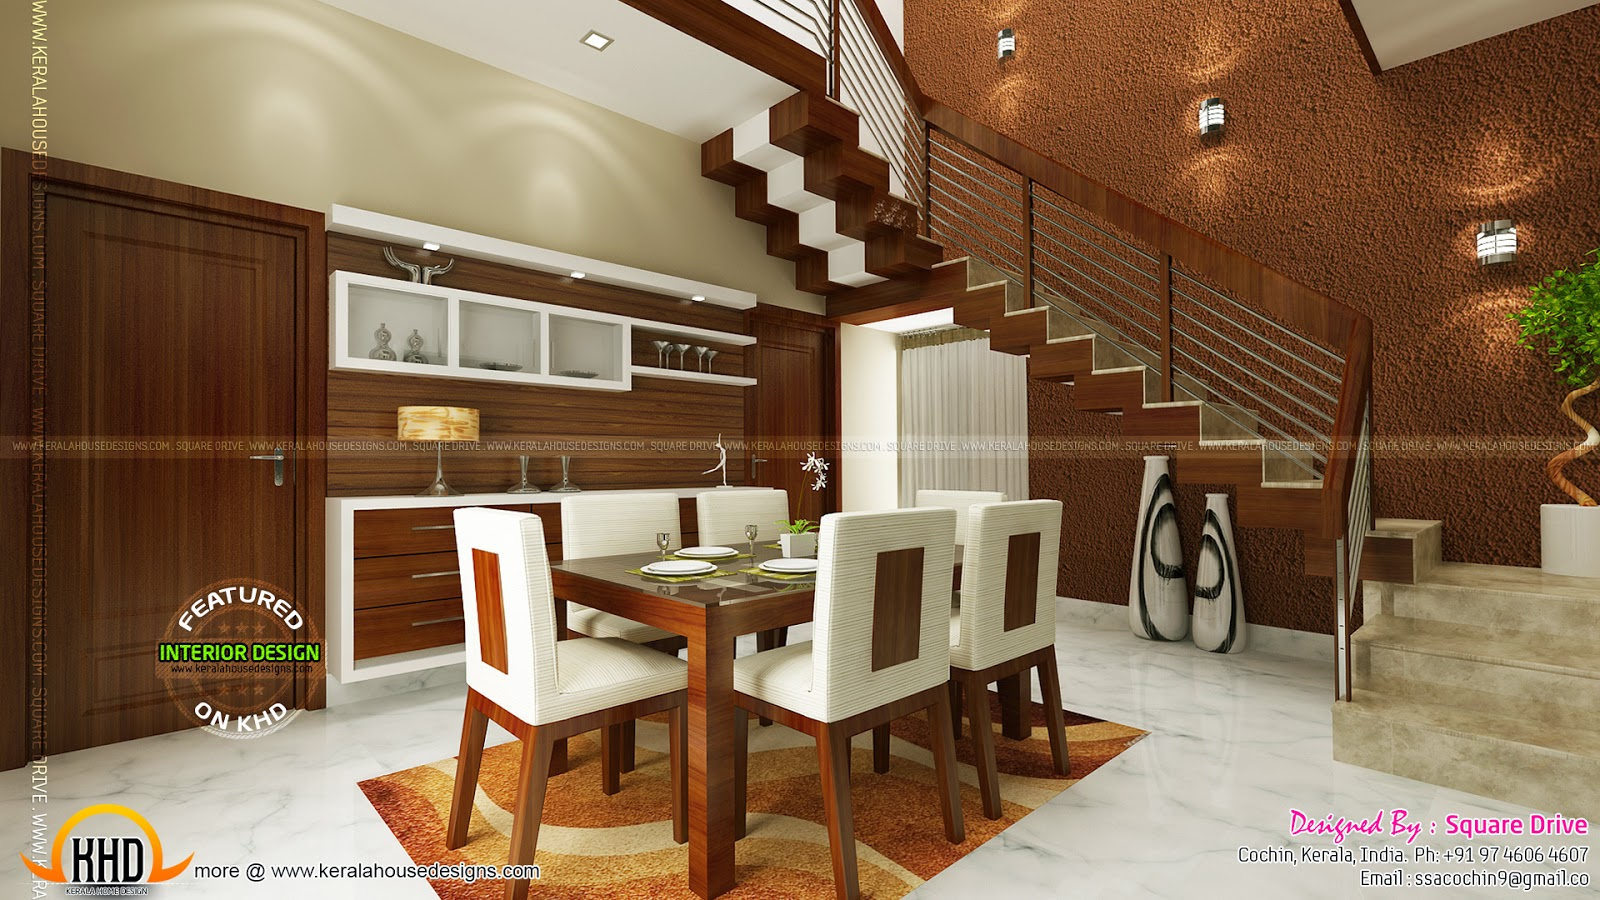 Cochin interior design kerala home design and floor plans for Picture of interior designs of house